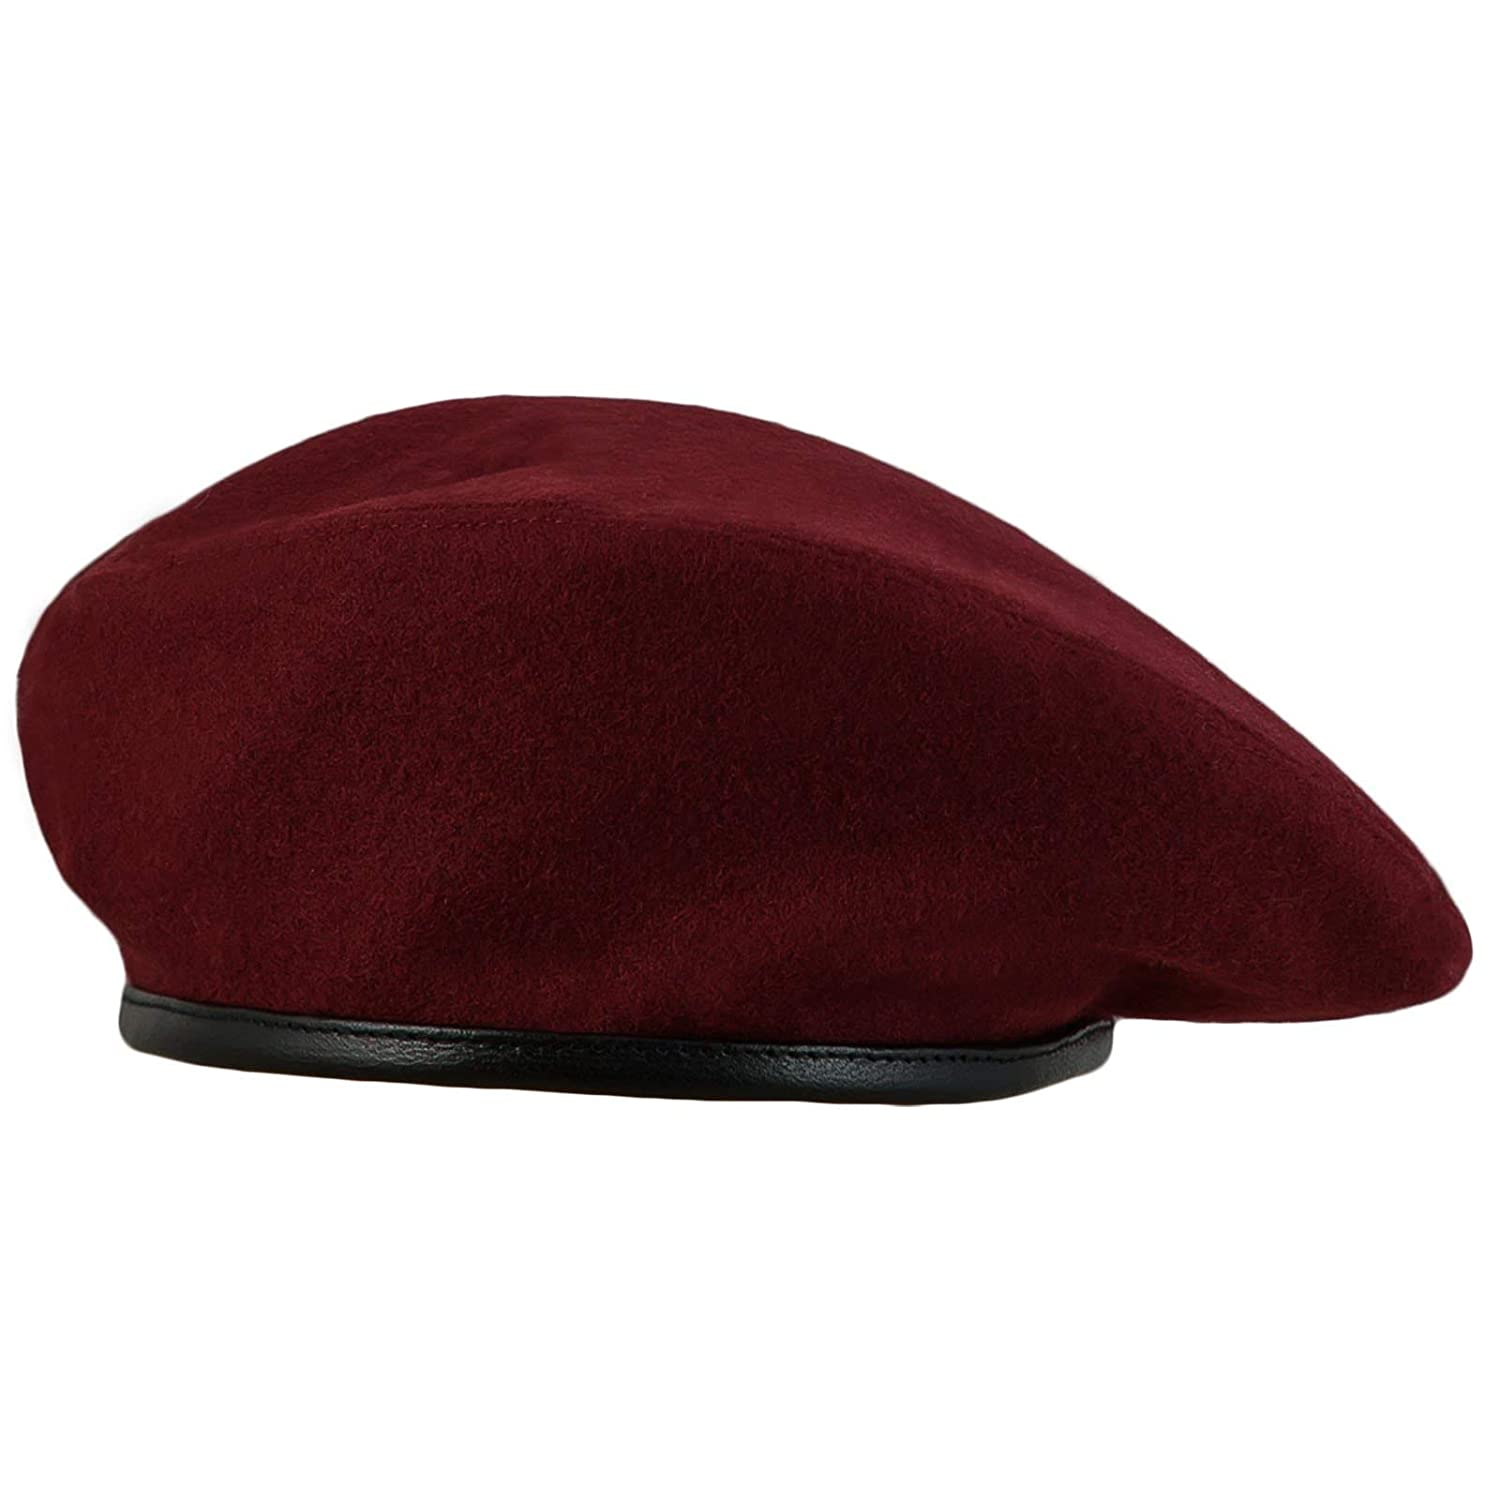 Berret Size 7½ NEW Burgundy Wool Military Style Beret